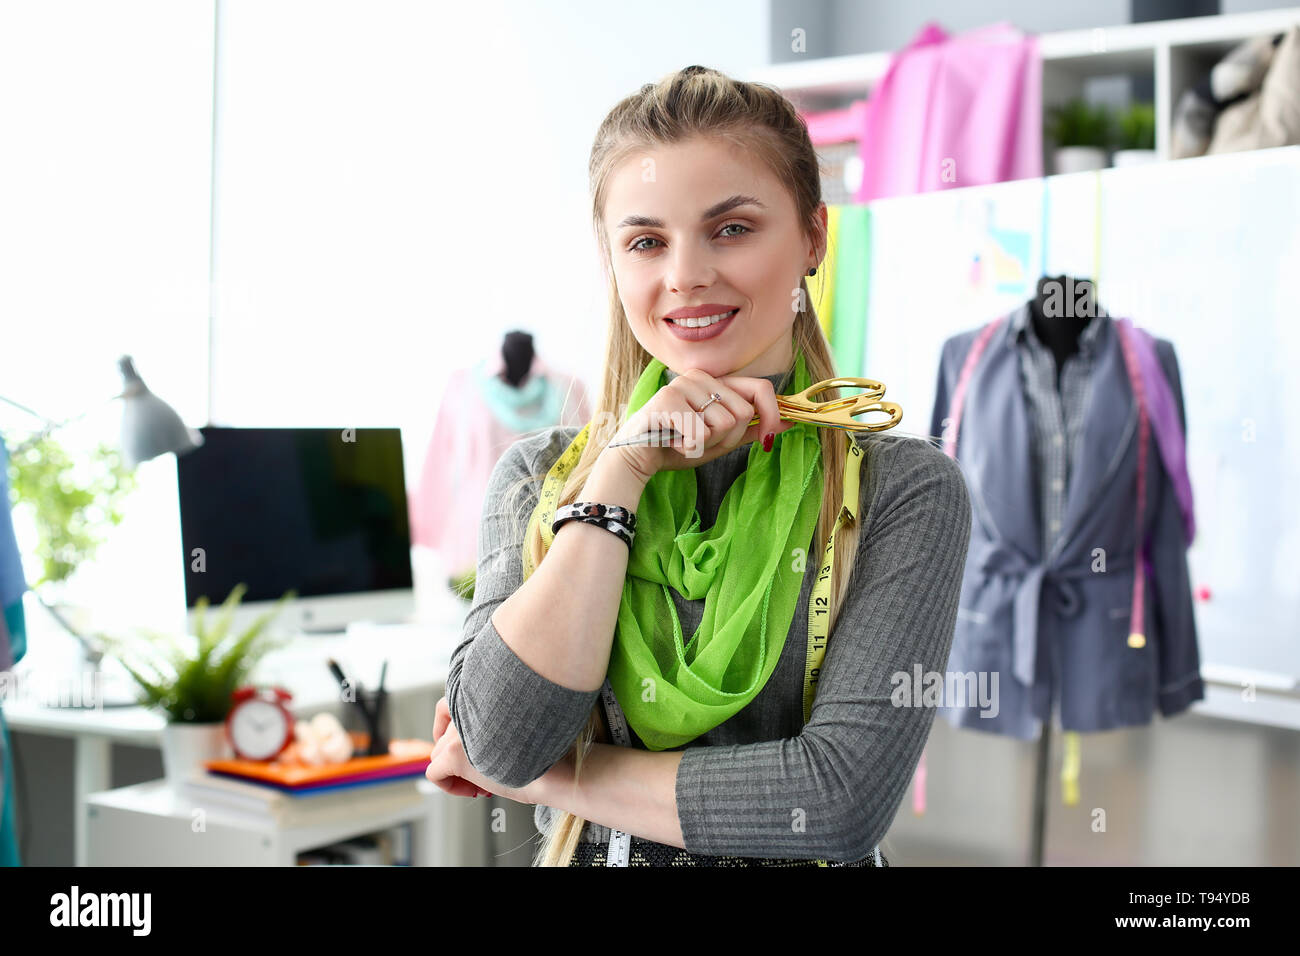 Tailoing Business Concept Fashion Needling Service - Stock Image